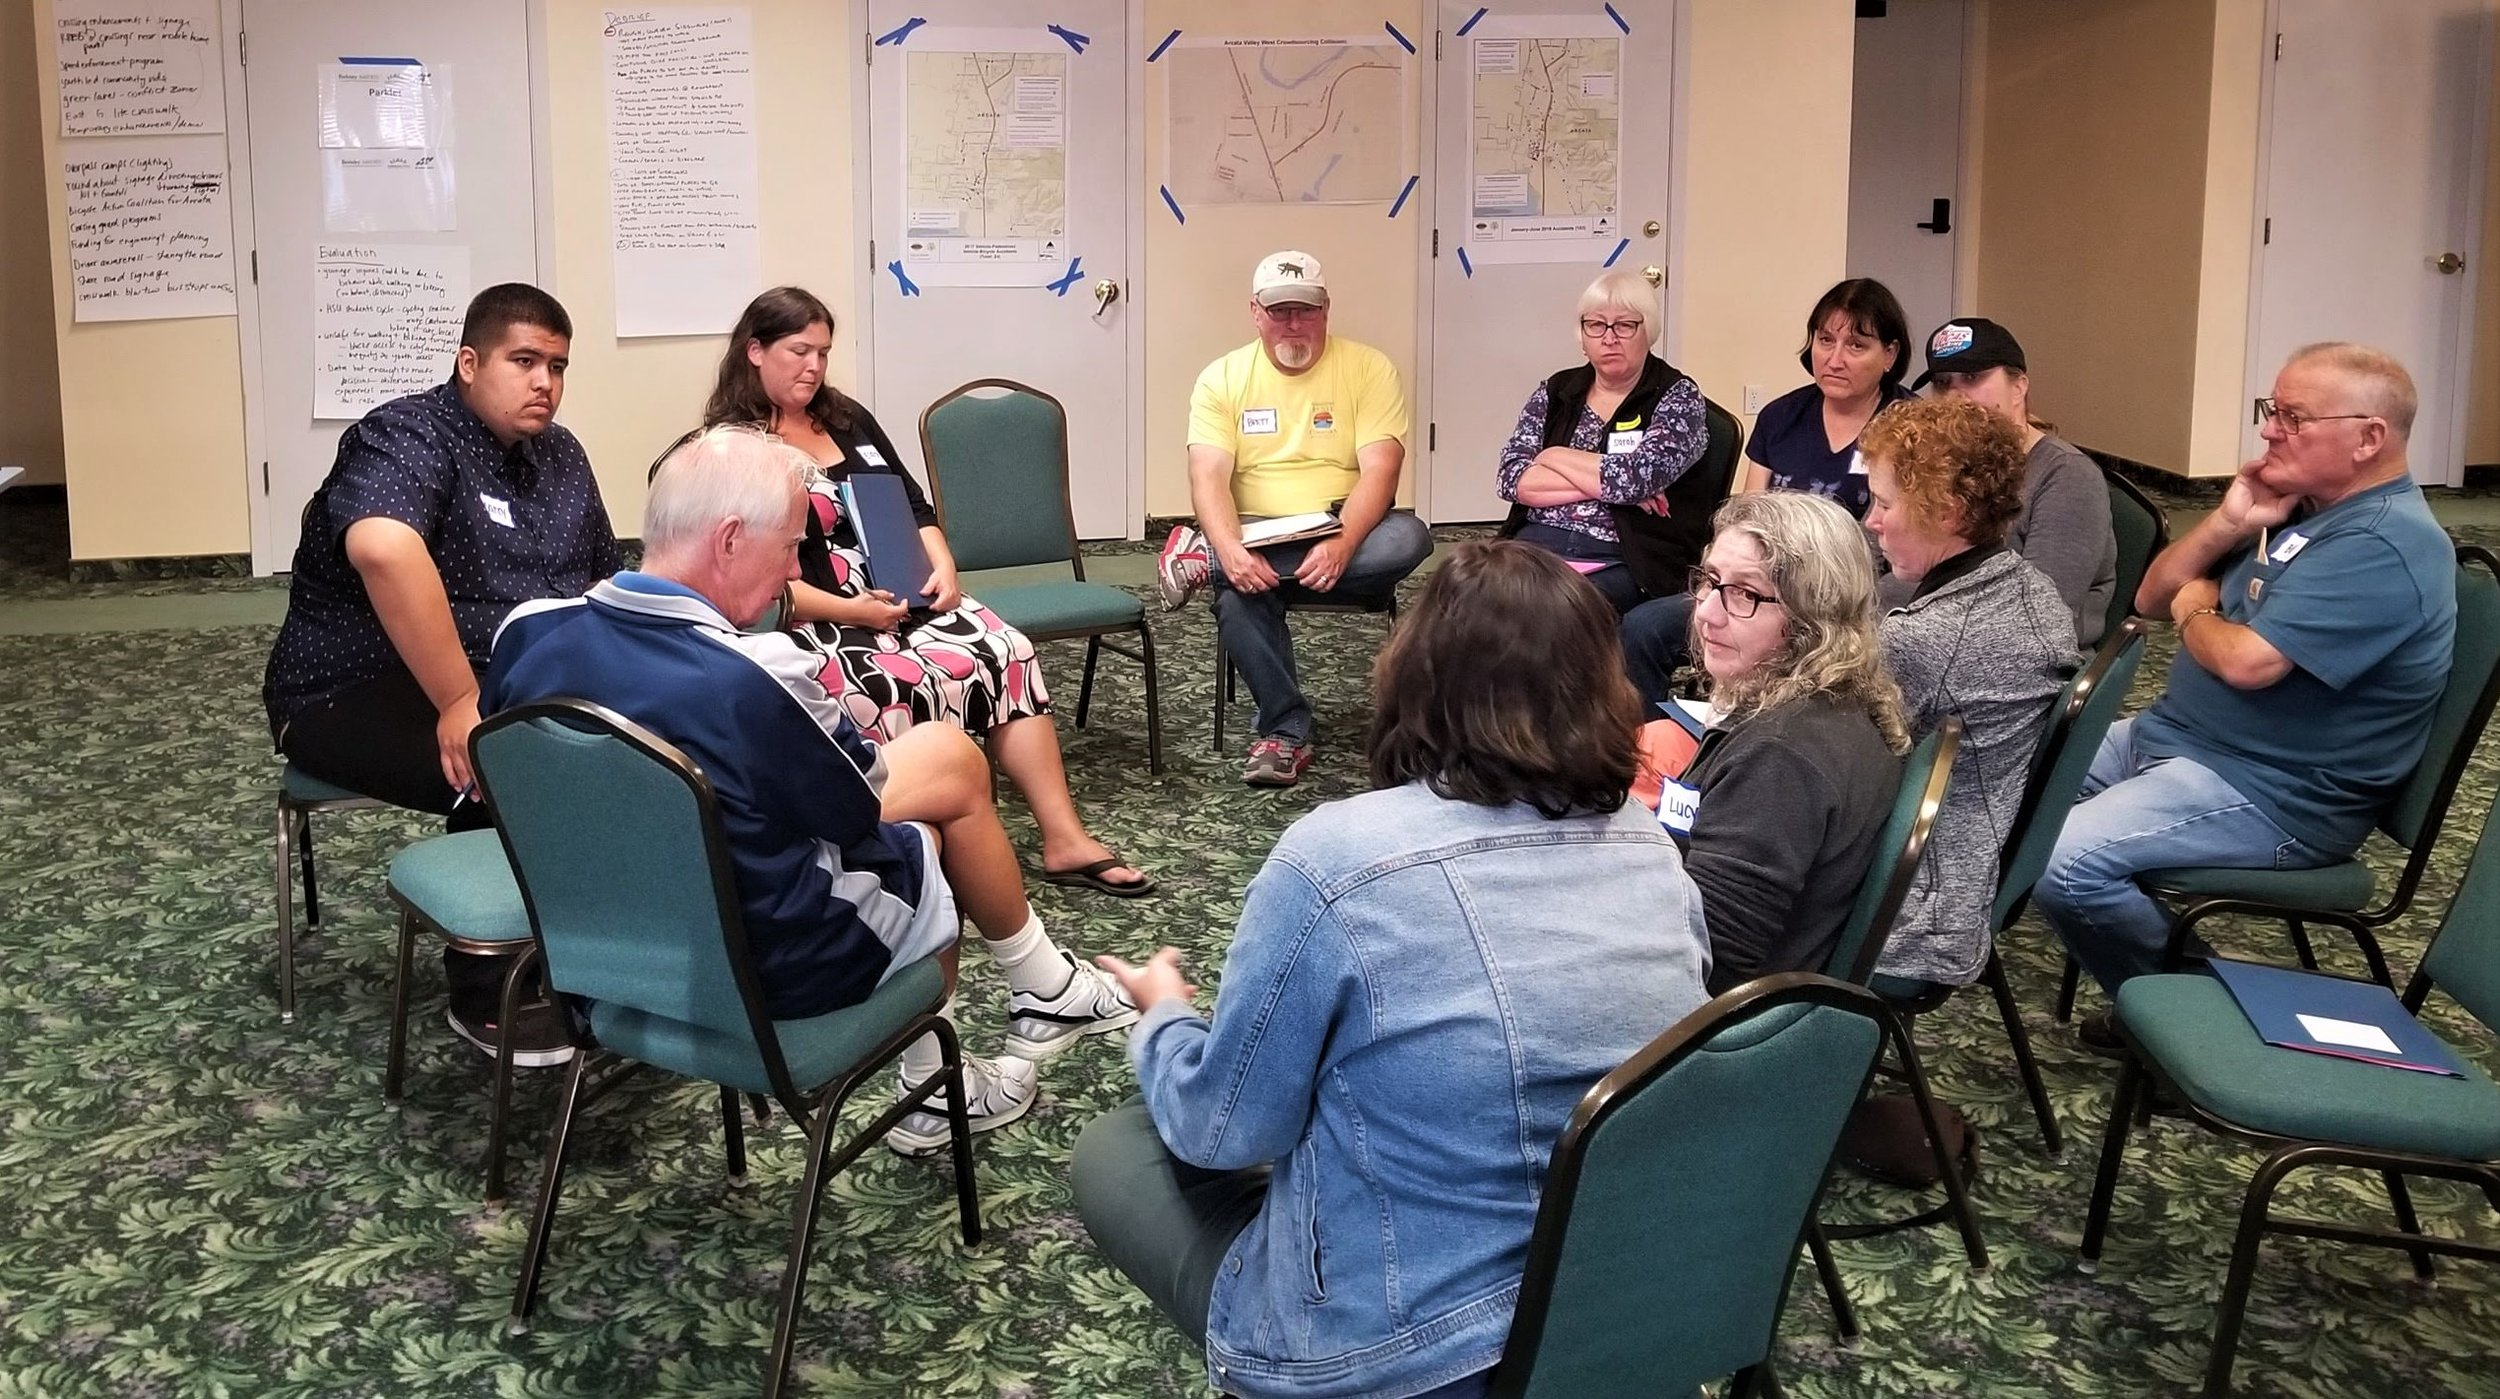 Workshop participants at the Valley West CPBST in Arcata discuss walking and biking safety priorities.